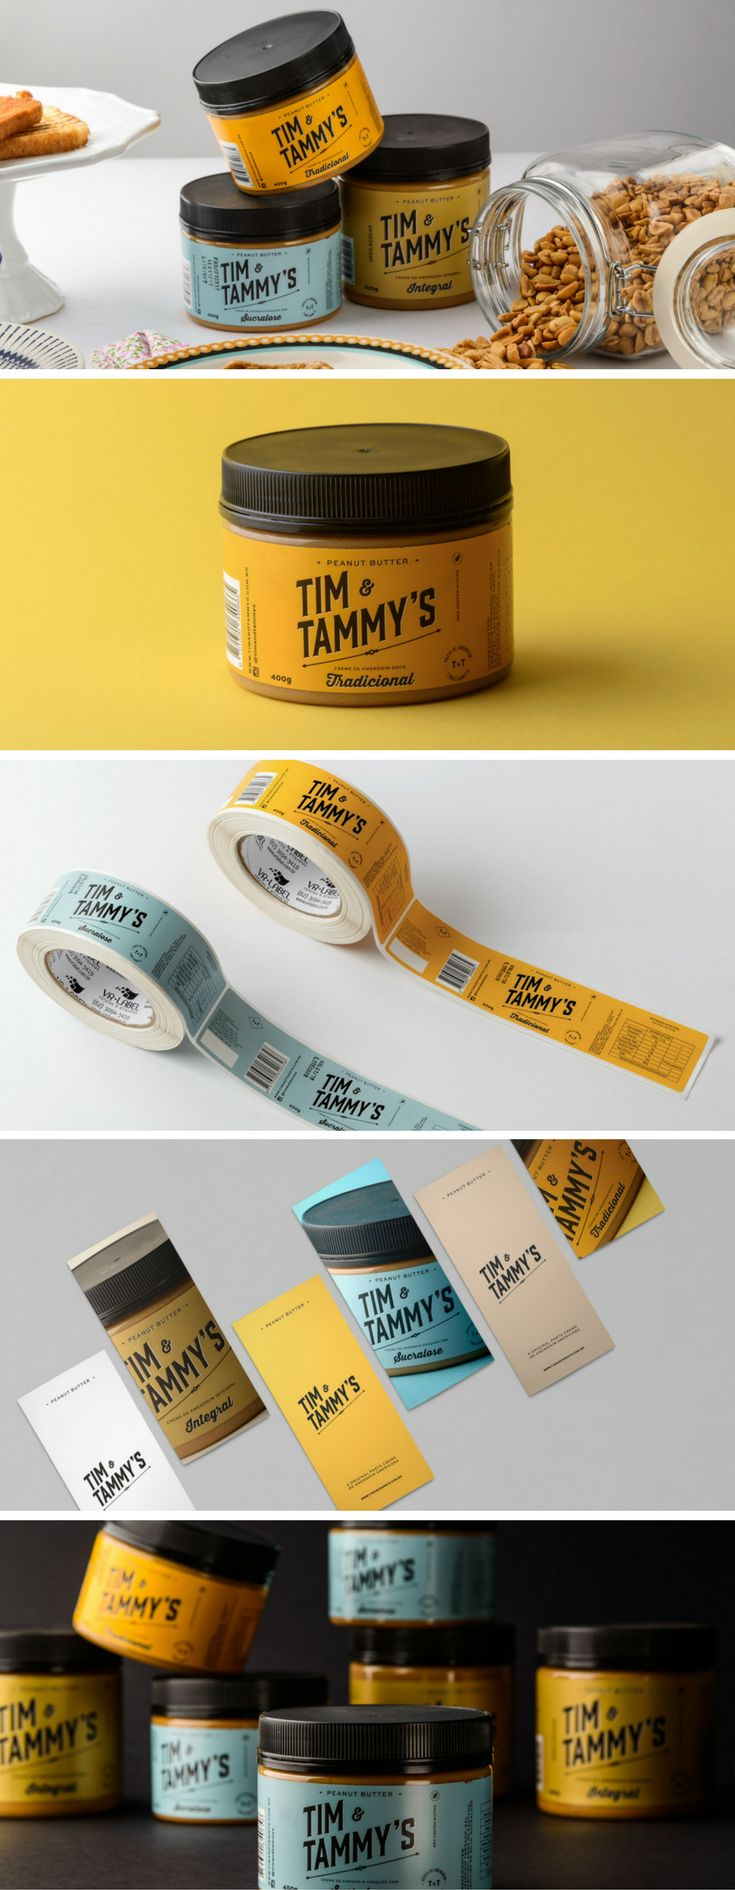 Packaging Design for Peanut Butter Company Tim & Tammy's